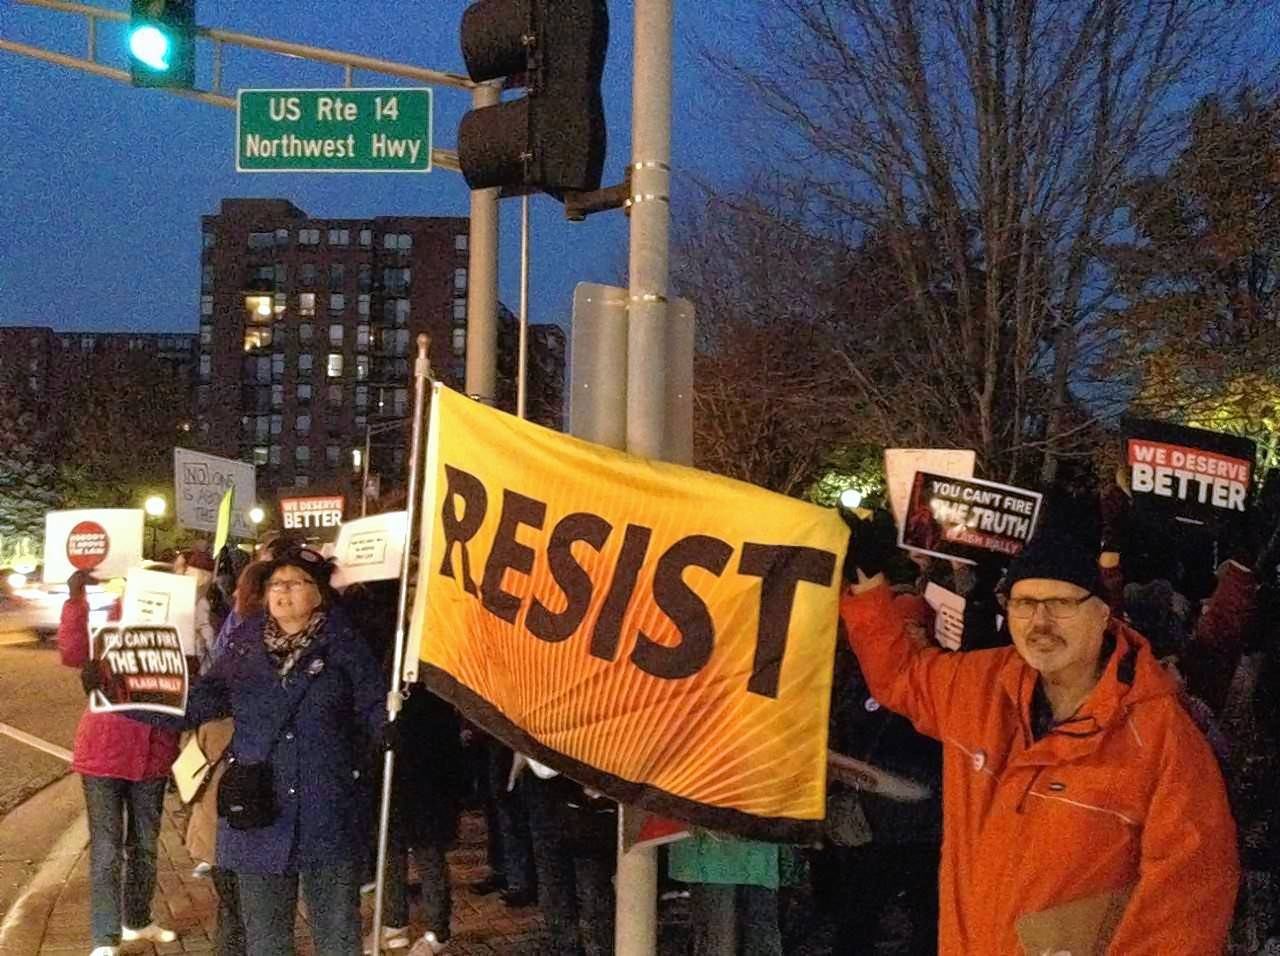 Protesters rallied Thursday night at the corner of Arlington Heights Road and Northwest Highway in Arlington Heights in support of the investigation by Special Counsel Robert Mueller into Russian meddling in the 2016 election.